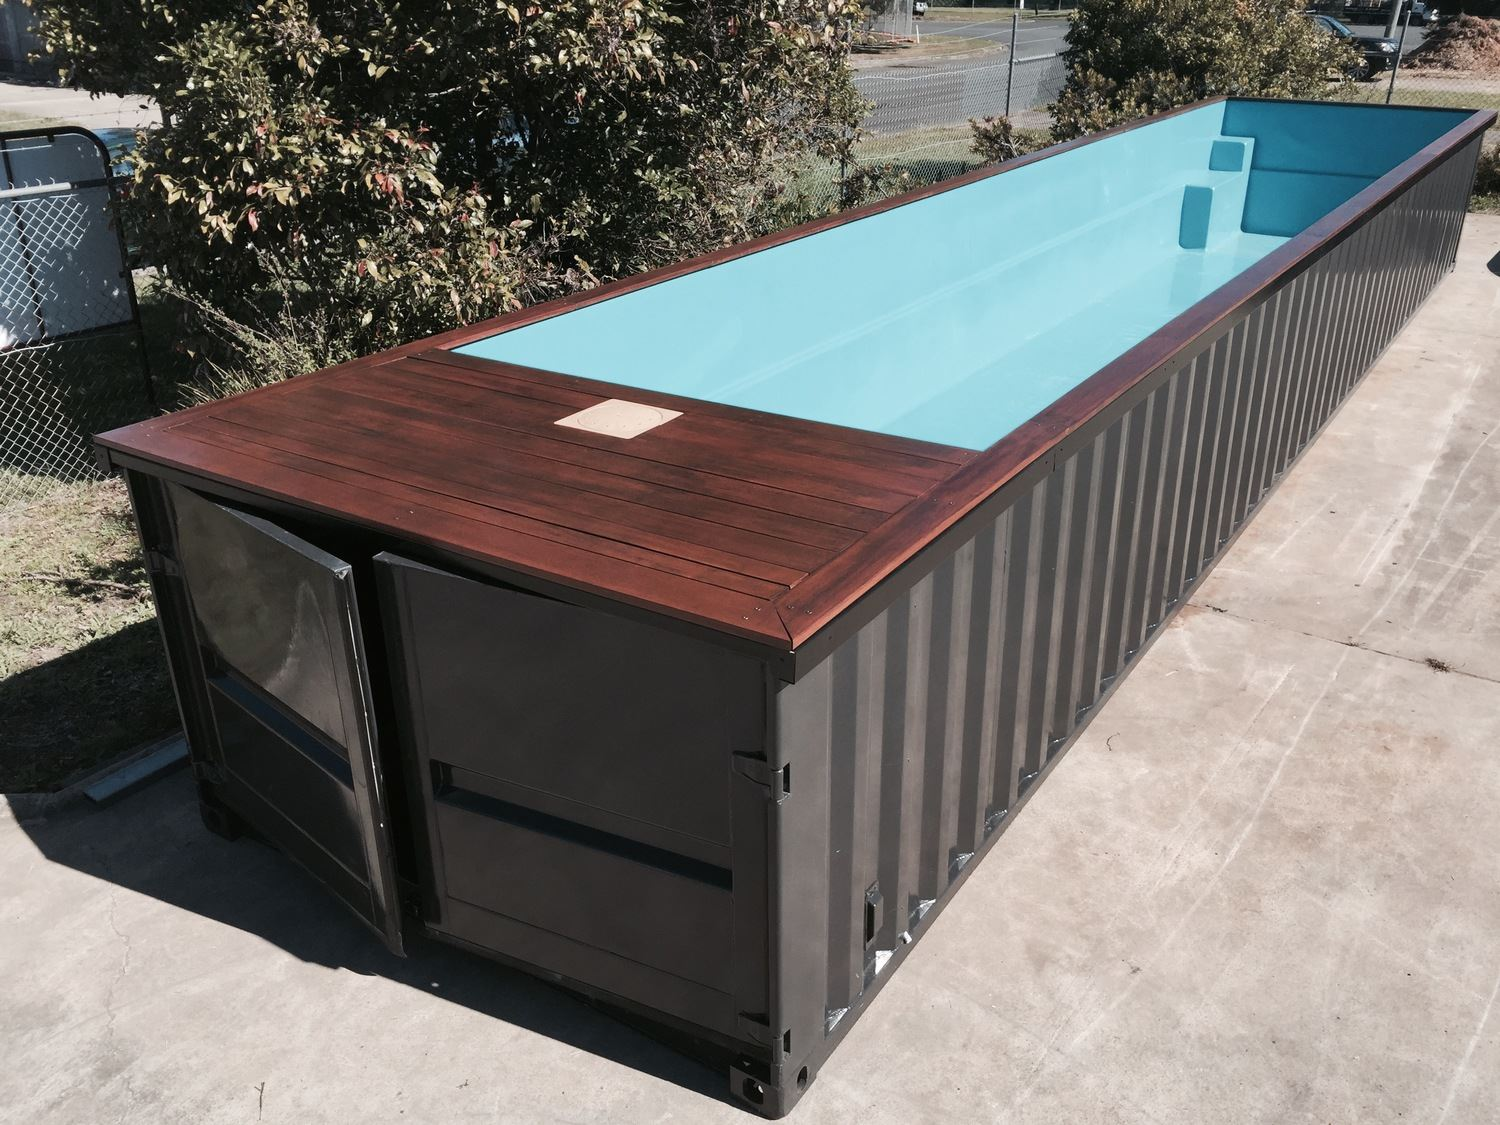 Extrêmement Open fields of possibility! POOL CONTAINERS! - Cubner RB55